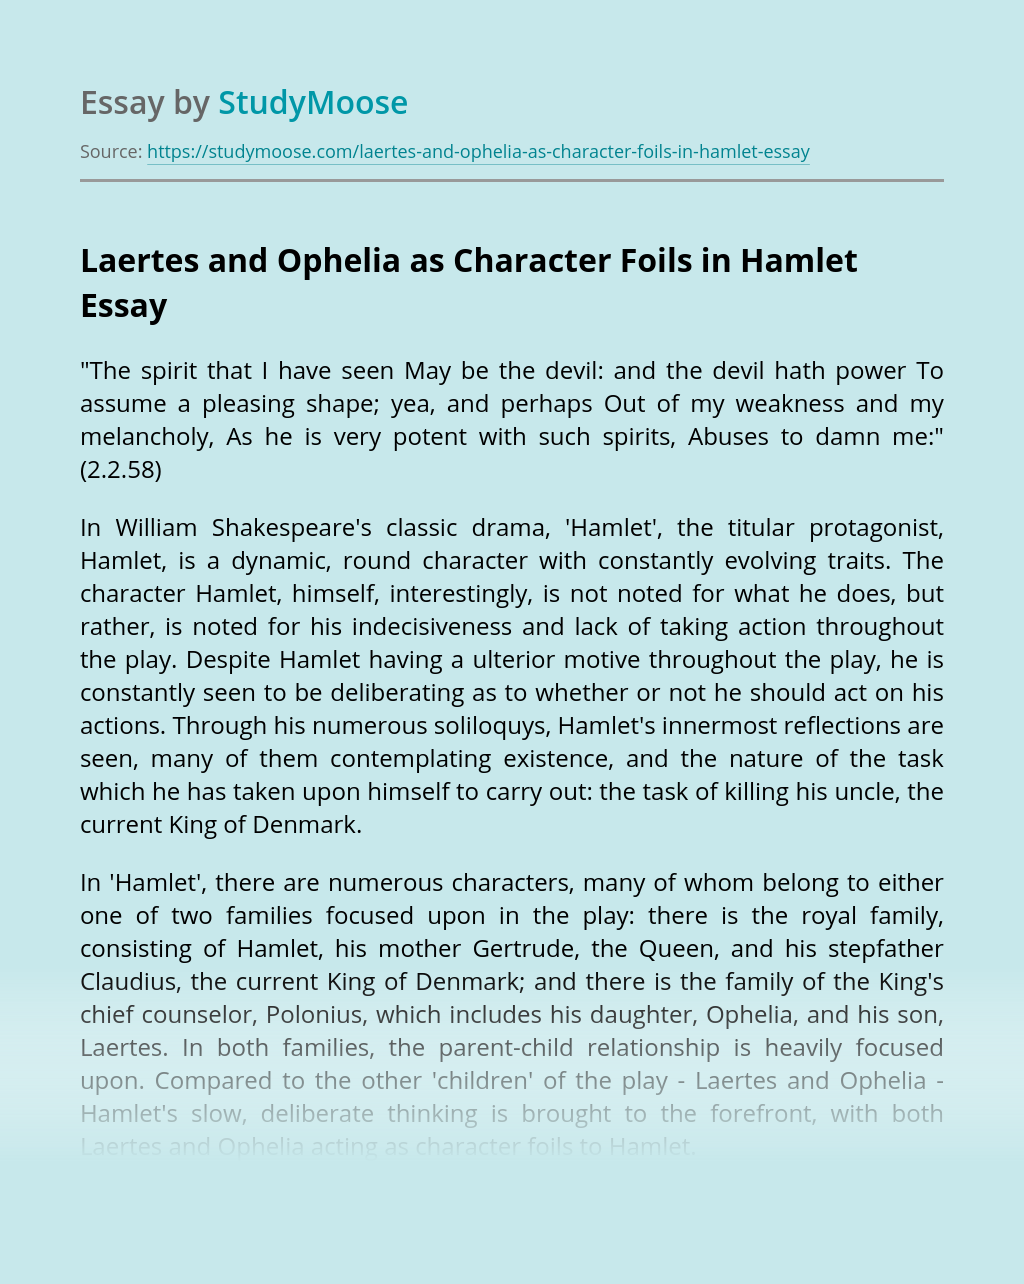 Laertes and Ophelia as Character Foils in Hamlet